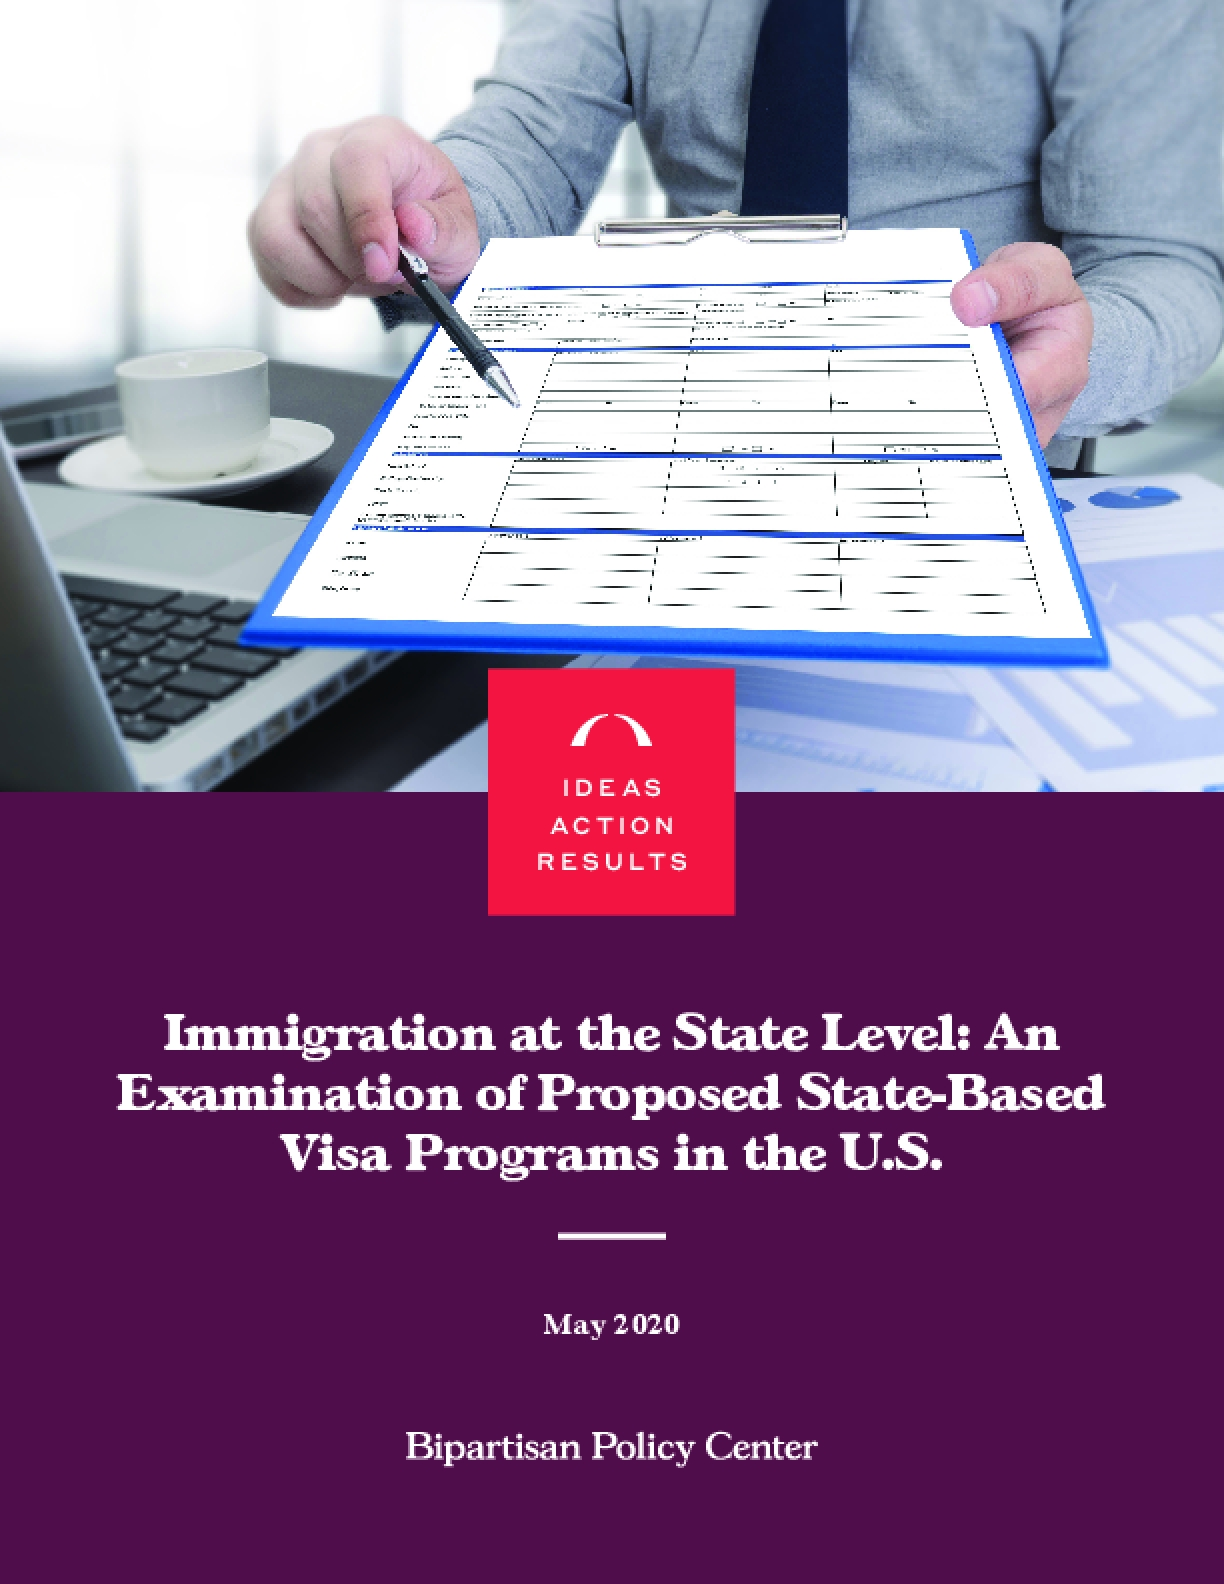 Immigration at the State Level: An Examination of Proposed State-Based Visa Programs in the U.S.